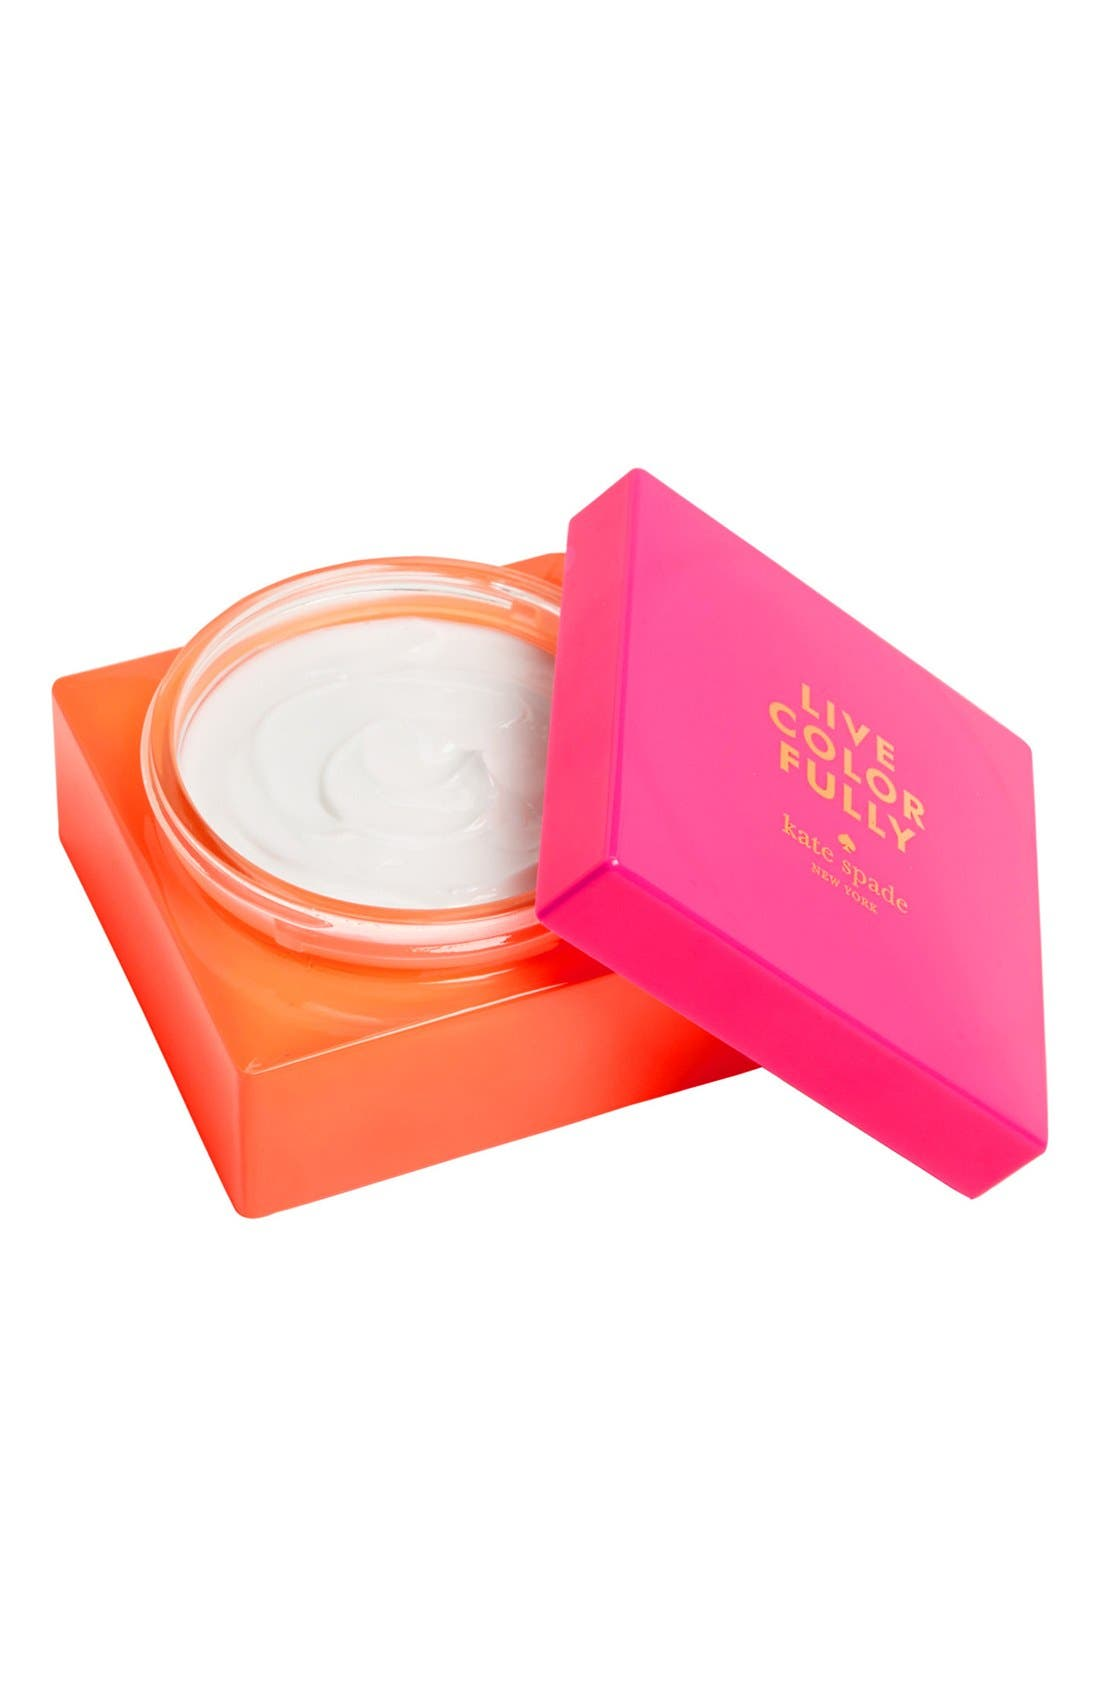 kate spade new york 'live colorfully' body cream